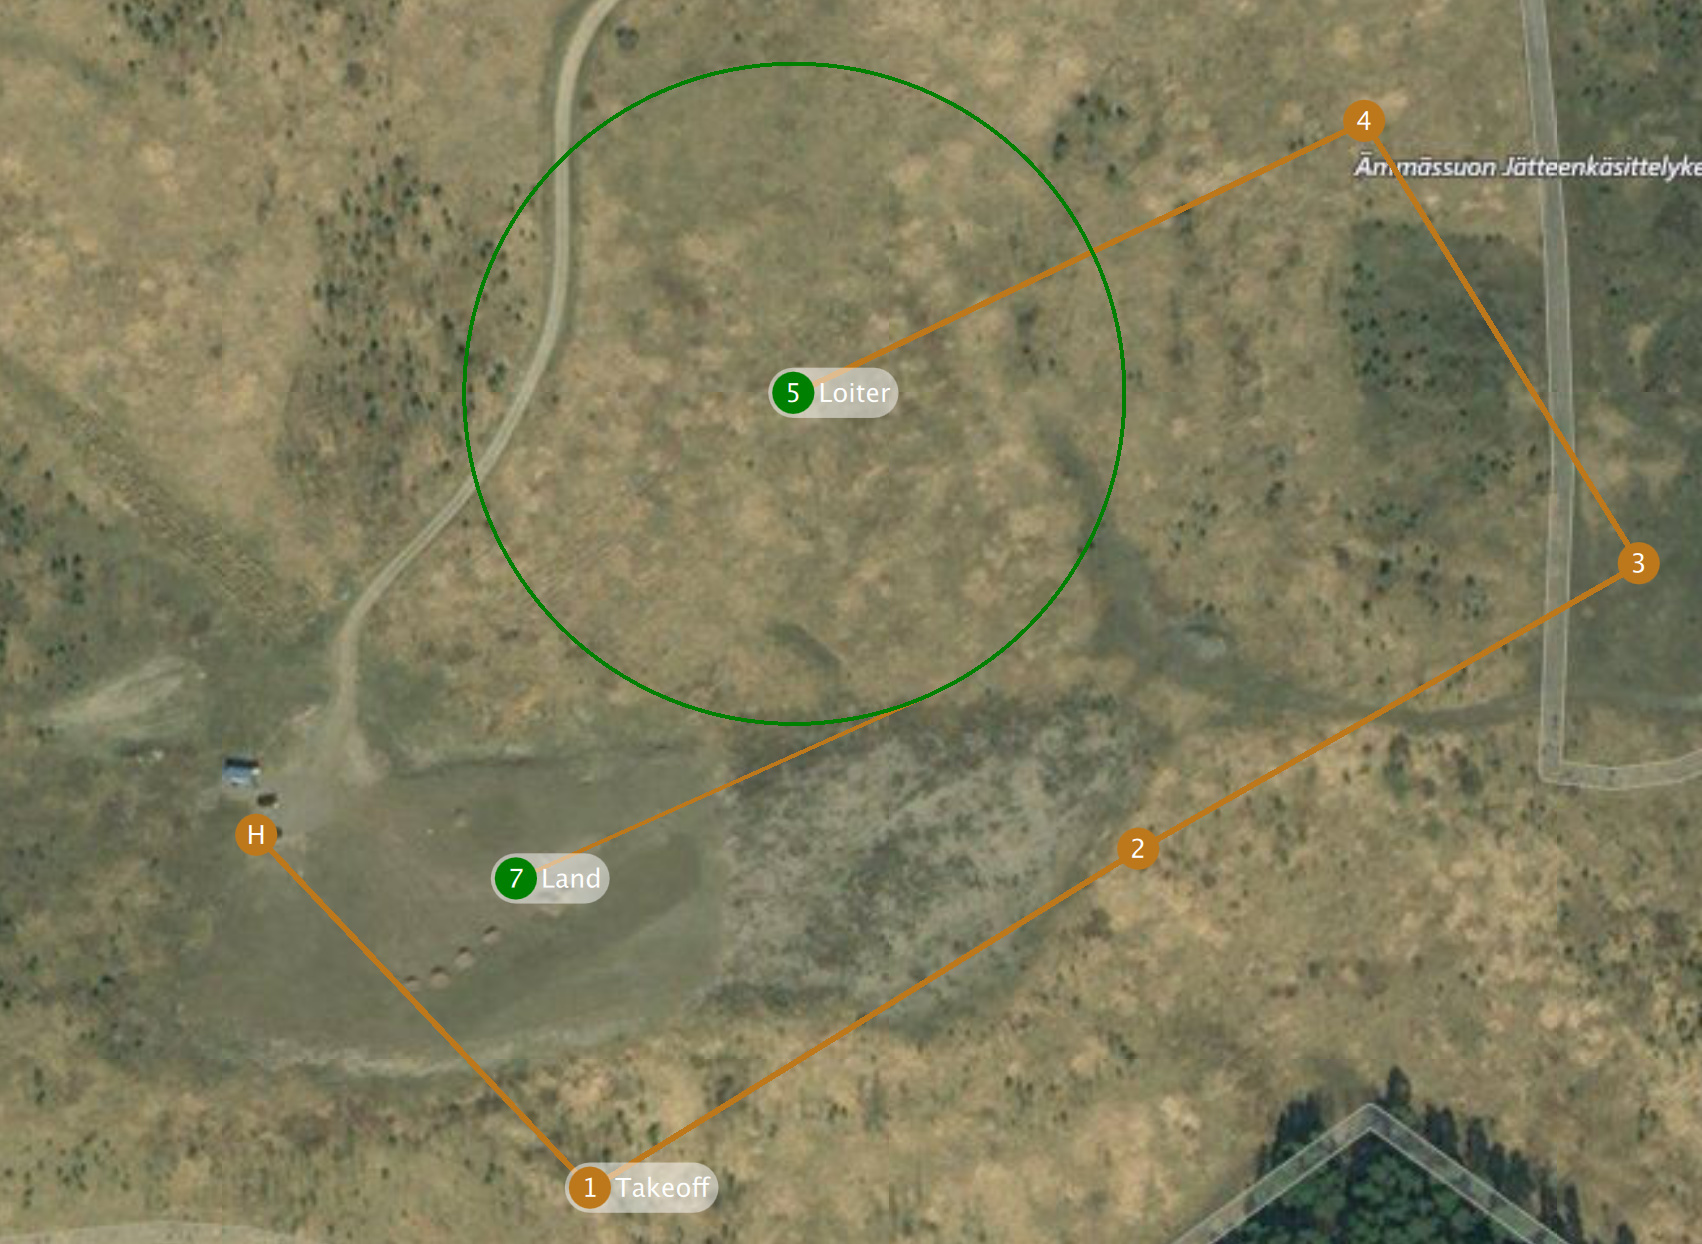 Mission rejected: waypoint within landing flare - QGroundControl